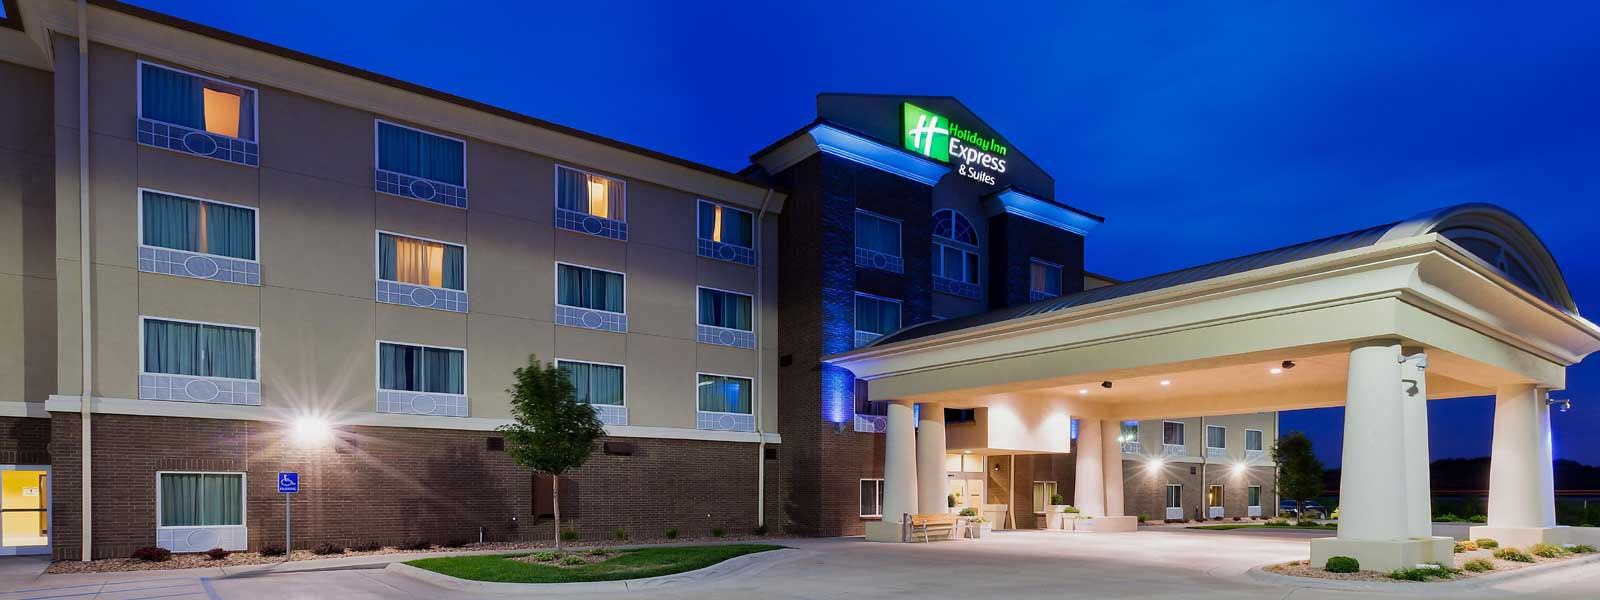 Clean Comfortable Rooms Lodging Hotels Motels in Salina Kansas